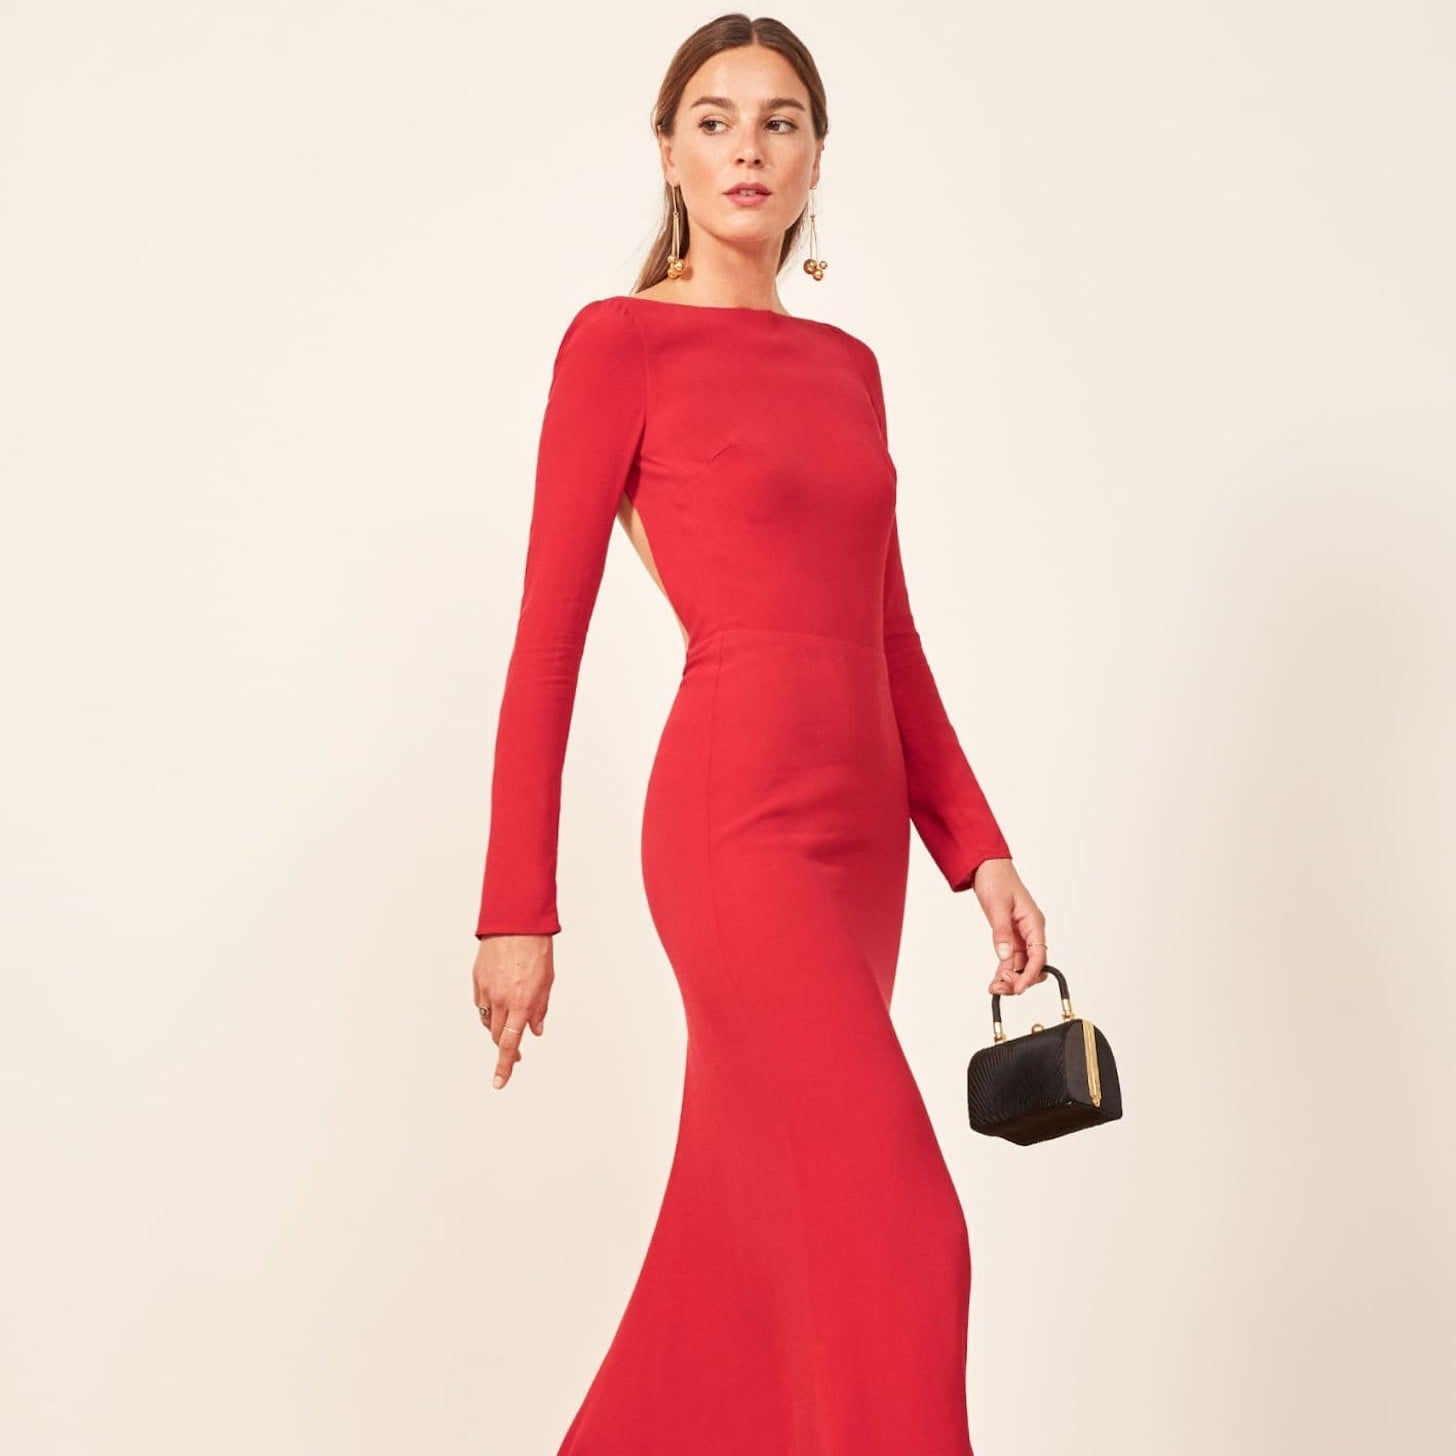 Wedding Guest Dresses With Sleeves.Best Long Sleeved Wedding Guest Dresses Popsugar Fashion